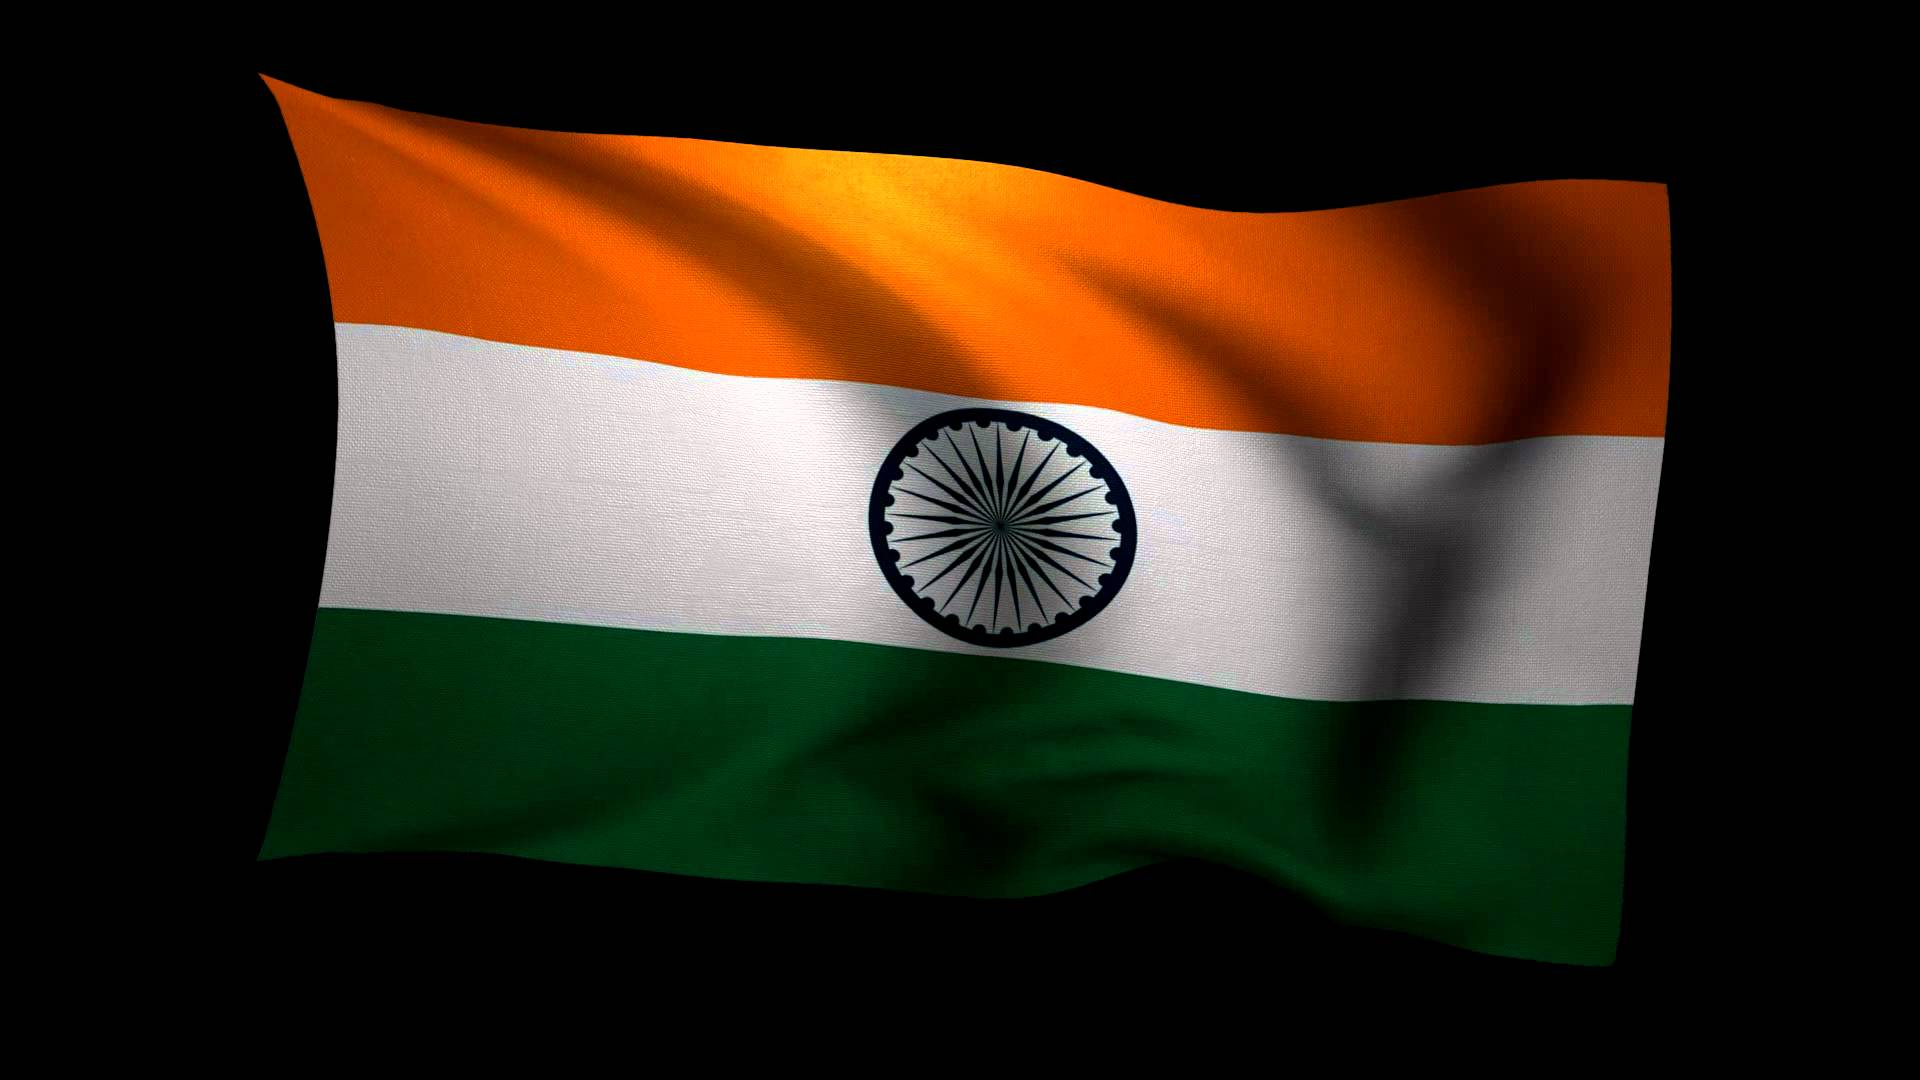 Indian Flag Images Hd720p: Indian Flag With Dark Backgrounds HD Pics